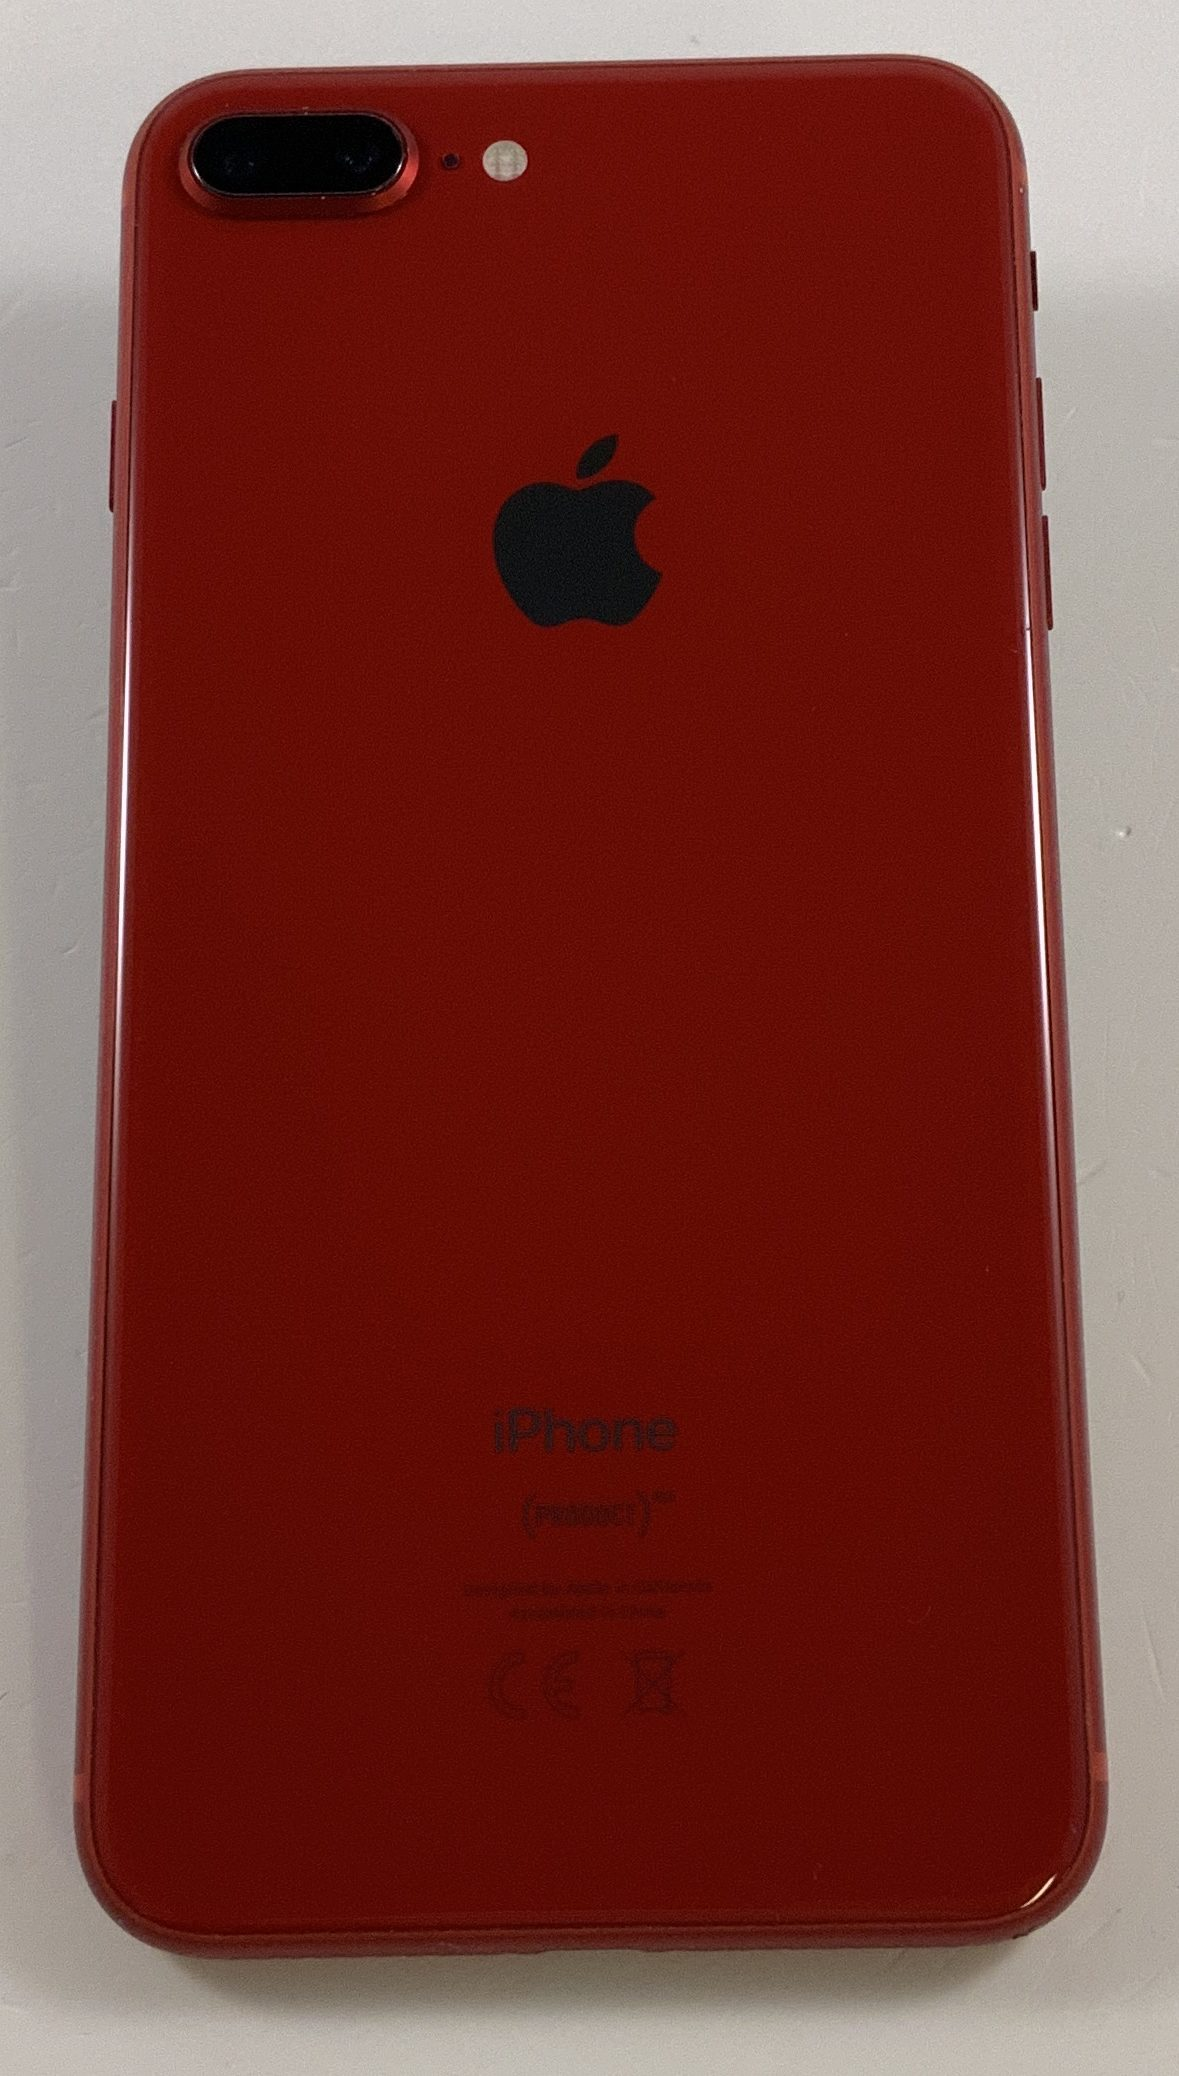 iPhone 8 Plus 64GB, 64GB, Red, bild 2